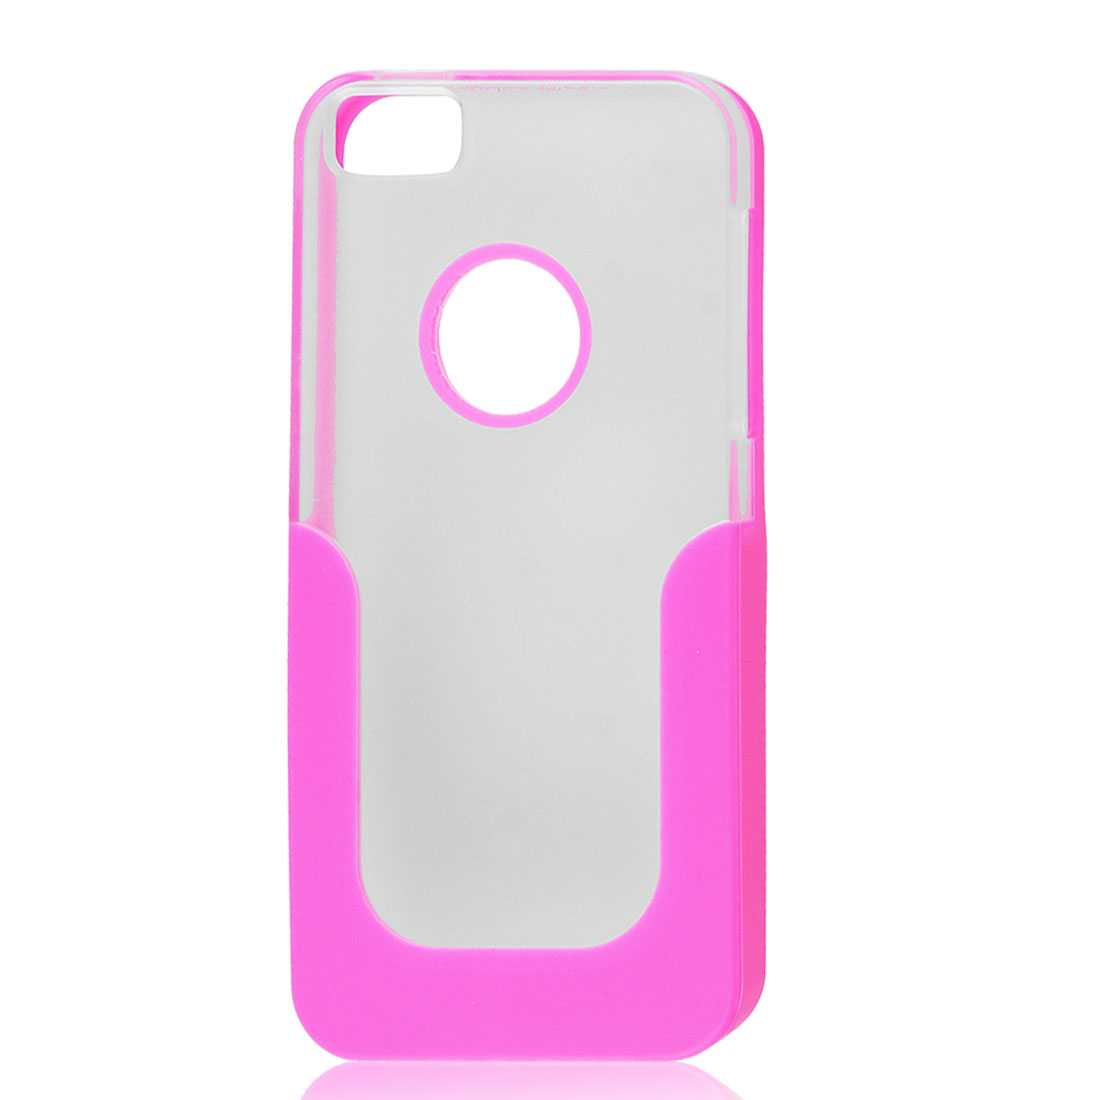 Soft Plastic Case Skin Cover Shell Rose Pink Clear for Apple iPhone 5 5G